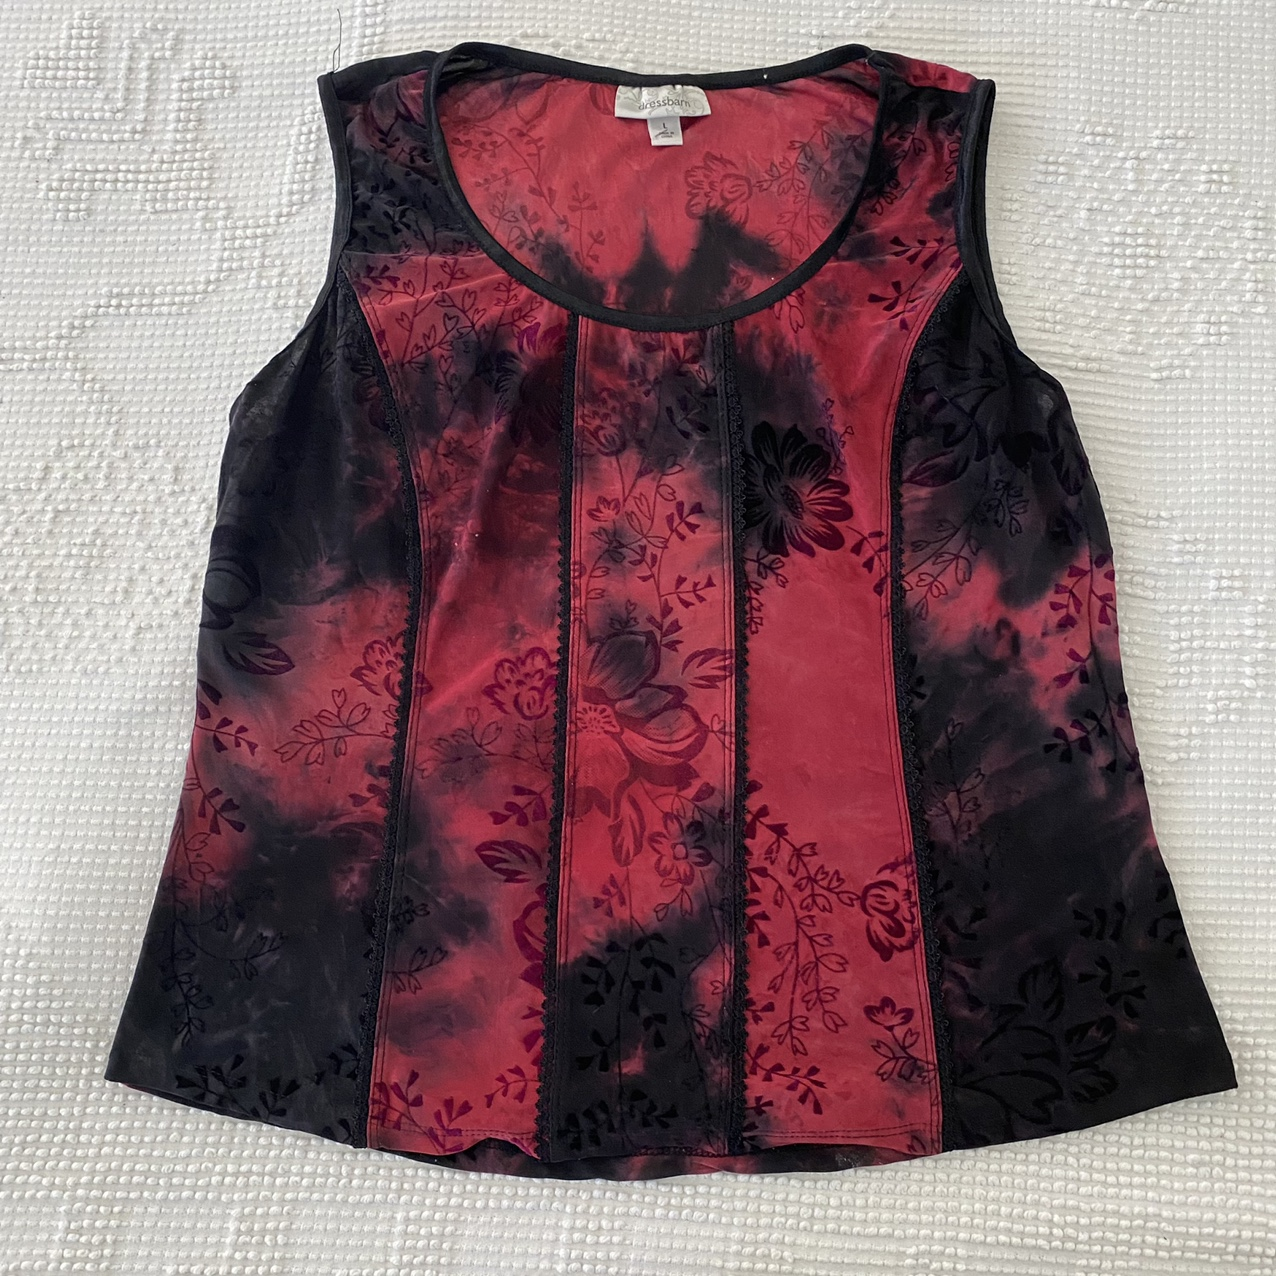 Product Image 1 - Beautiful red and black corset